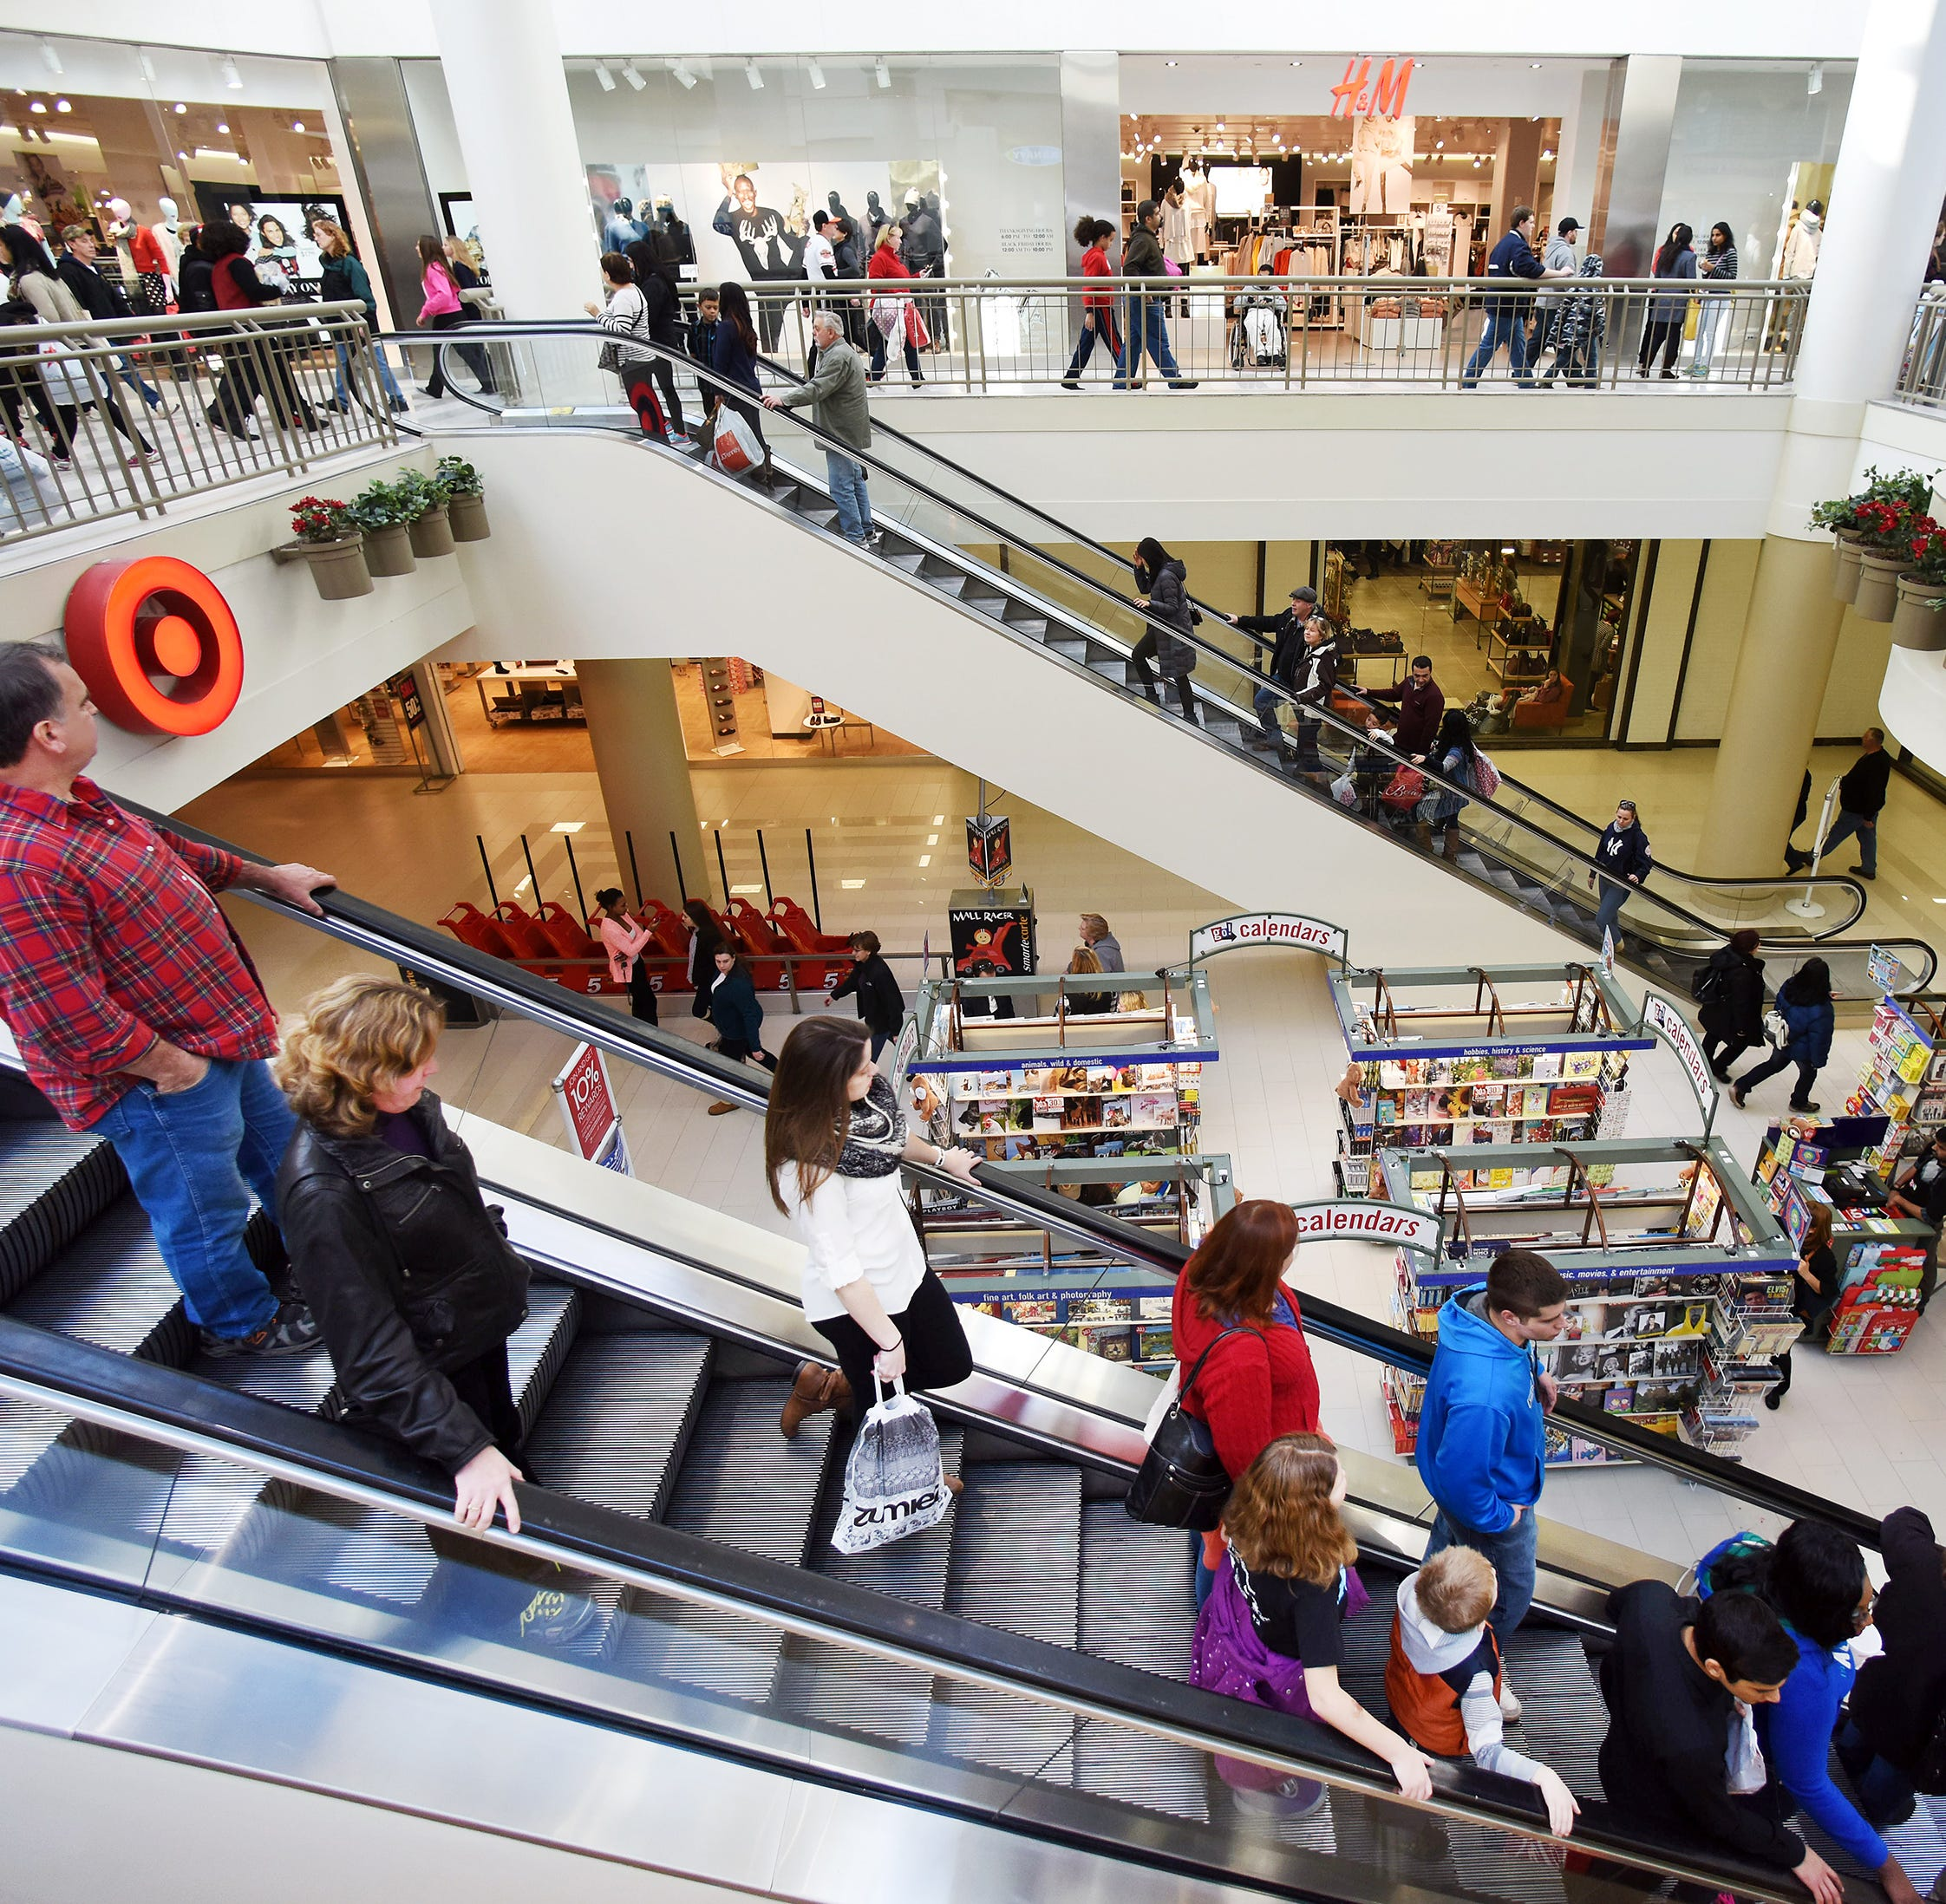 Bargain hunters shop at the Poughkeepsie Galleria in the Town of Poughkeepsie.